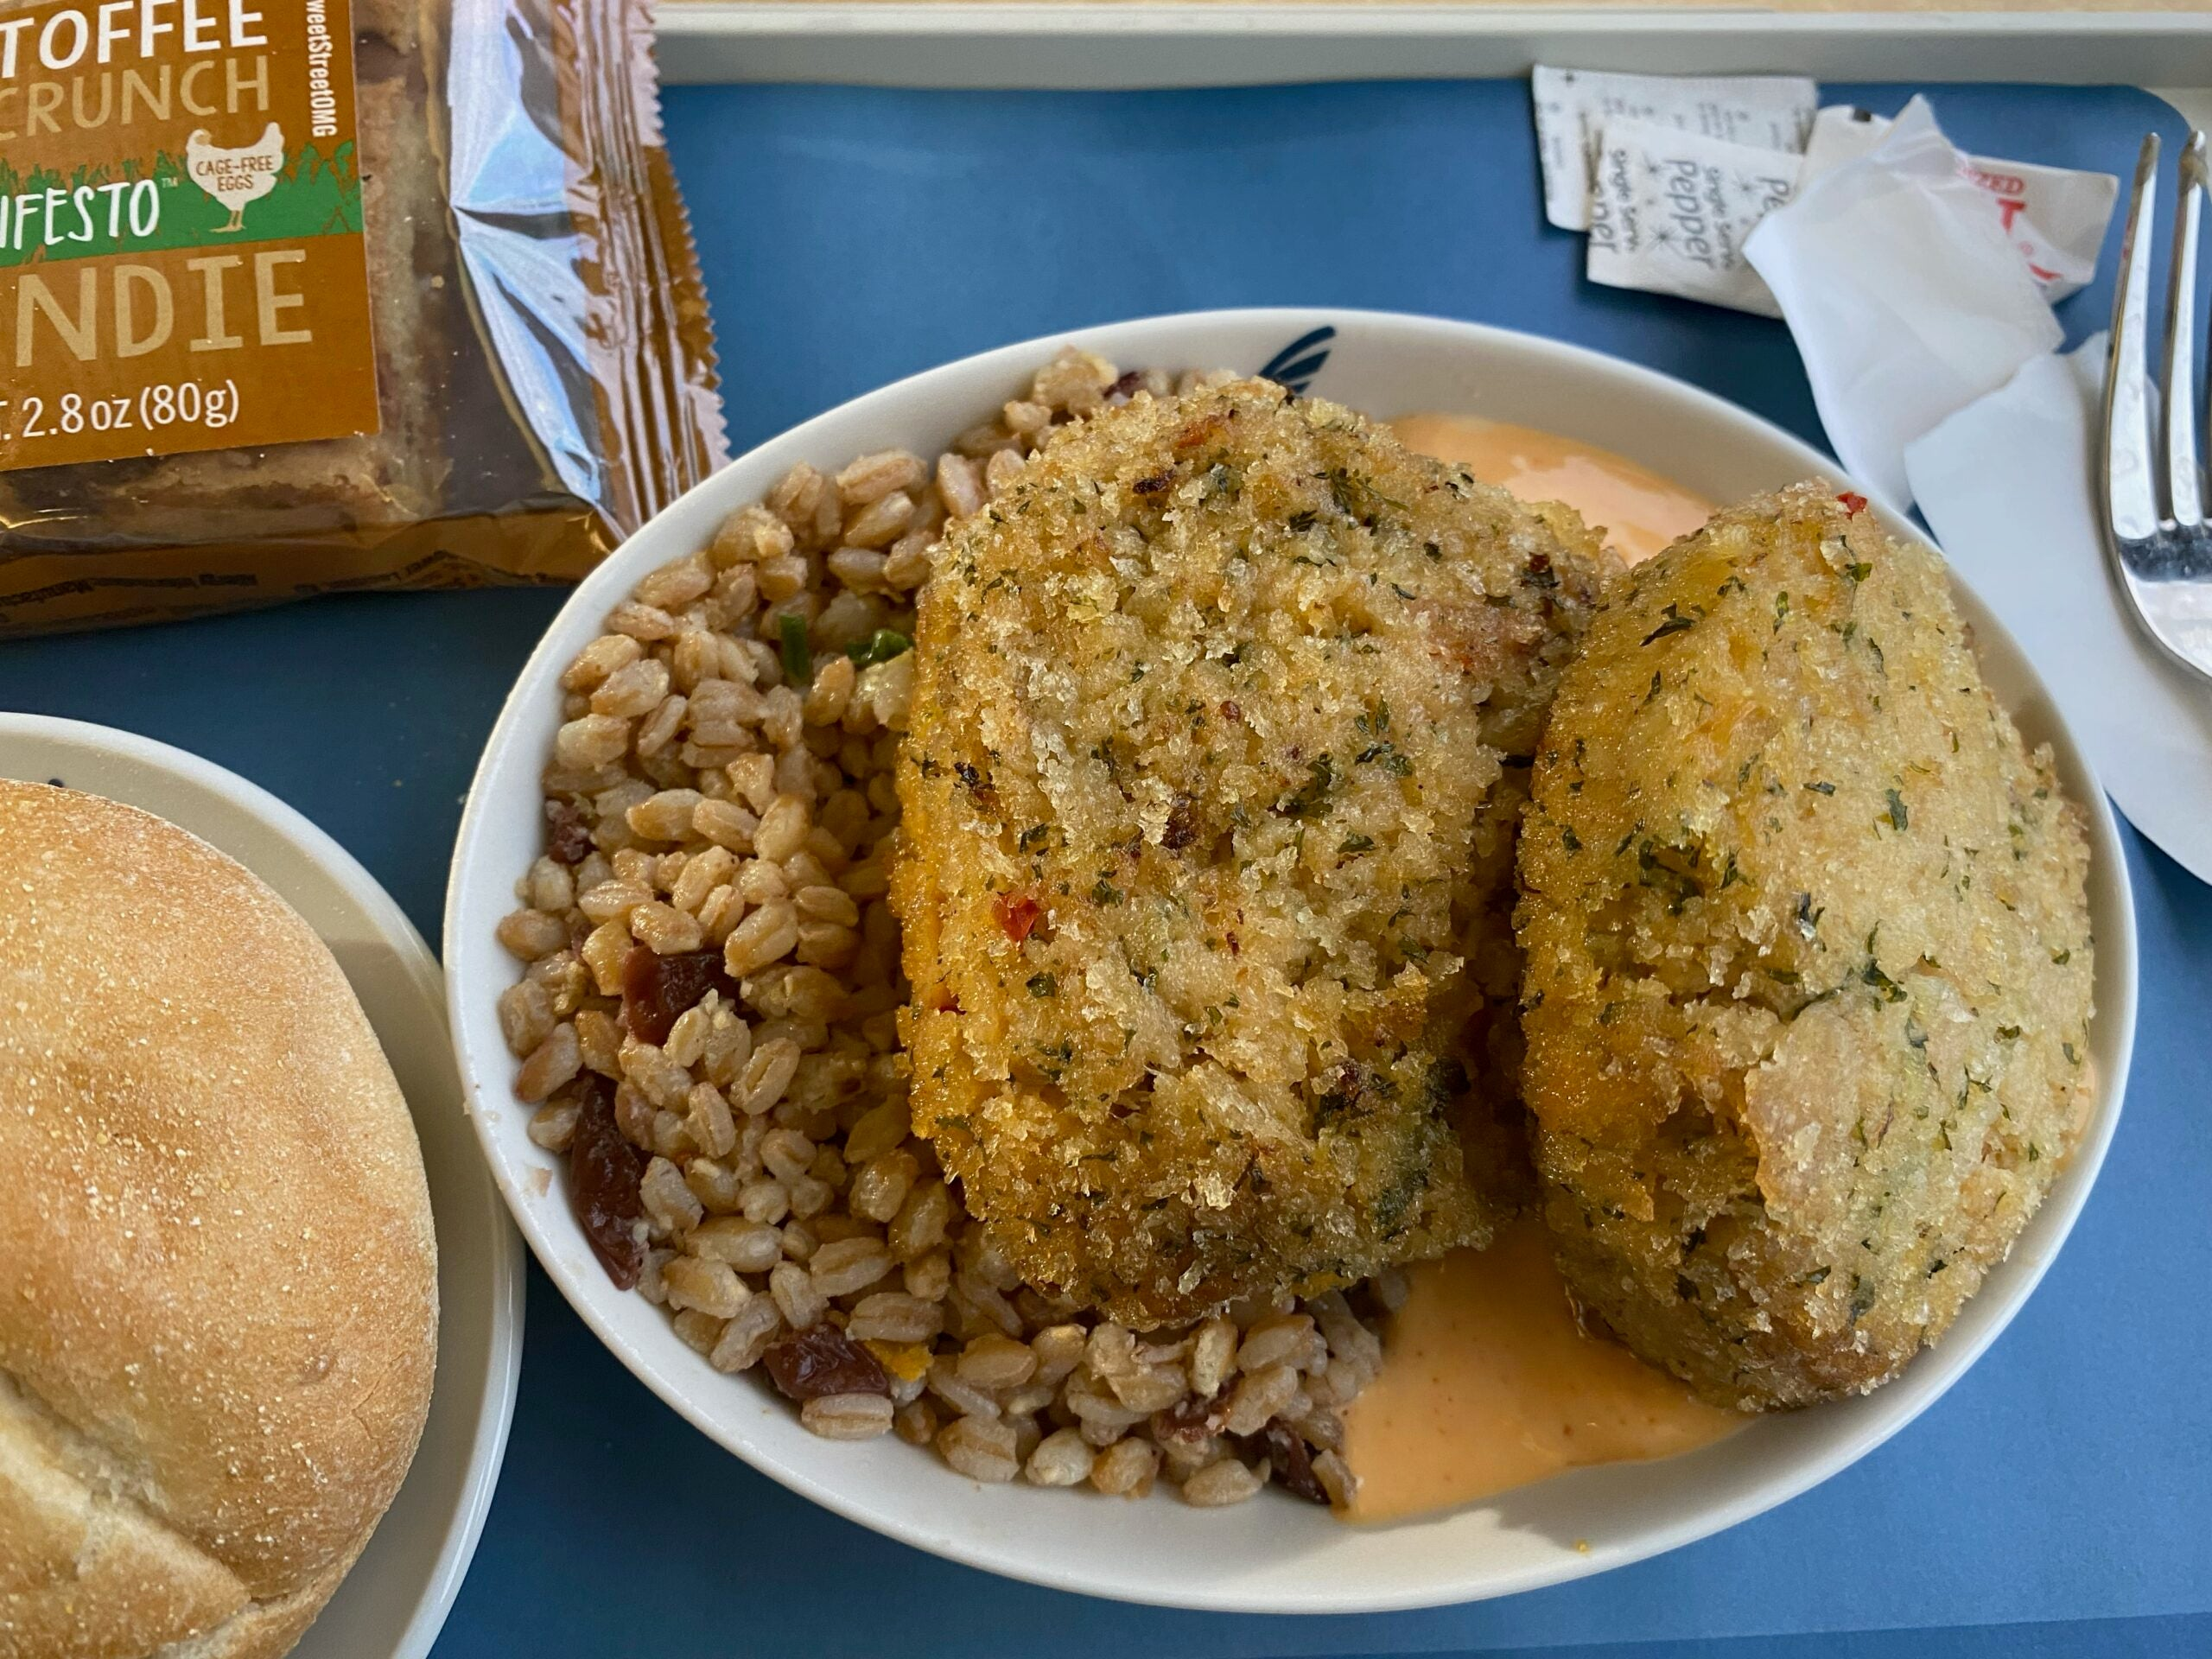 Amtrak rolled out a 'lobster crab cake' – and it was surprisingly good